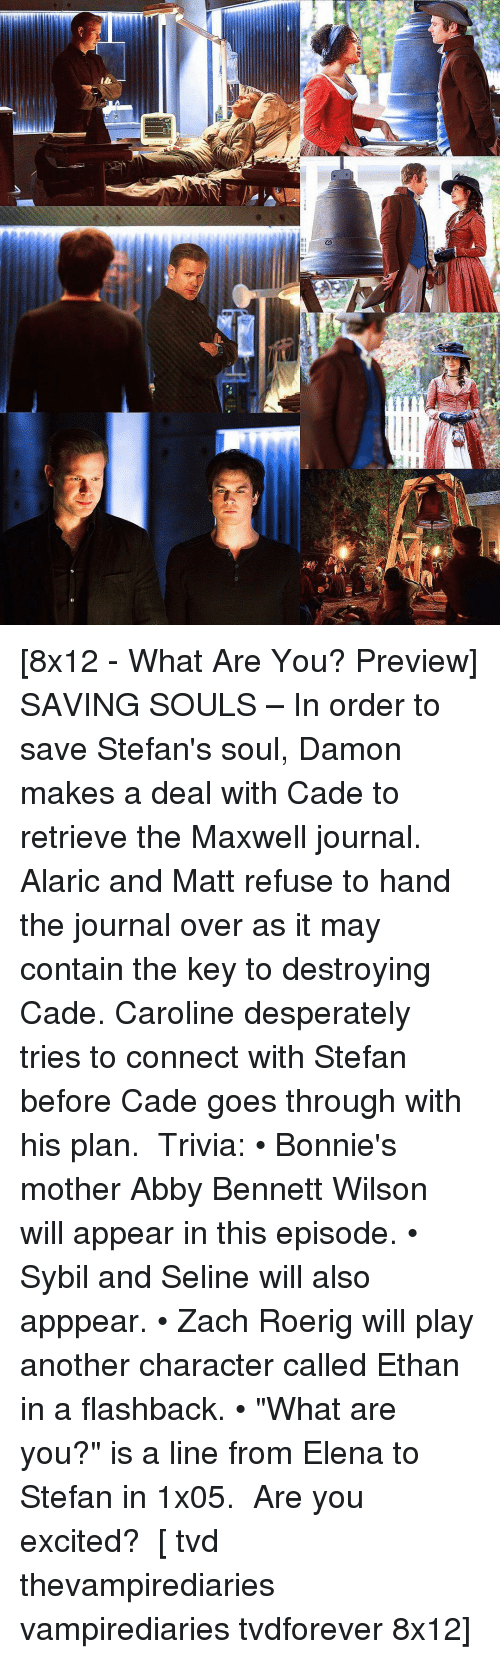 "Memes, 🤖, and Tvd: In [8x12 - What Are You? Preview] SAVING SOULS – In order to save Stefan's soul, Damon makes a deal with Cade to retrieve the Maxwell journal. Alaric and Matt refuse to hand the journal over as it may contain the key to destroying Cade. Caroline desperately tries to connect with Stefan before Cade goes through with his plan. ⠀ Trivia: • Bonnie's mother Abby Bennett Wilson will appear in this episode. • Sybil and Seline will also apppear. • Zach Roerig will play another character called Ethan in a flashback. • ""What are you?"" is a line from Elena to Stefan in 1x05. ⠀ Are you excited? ⠀ [ tvd thevampirediaries vampirediaries tvdforever 8x12]"